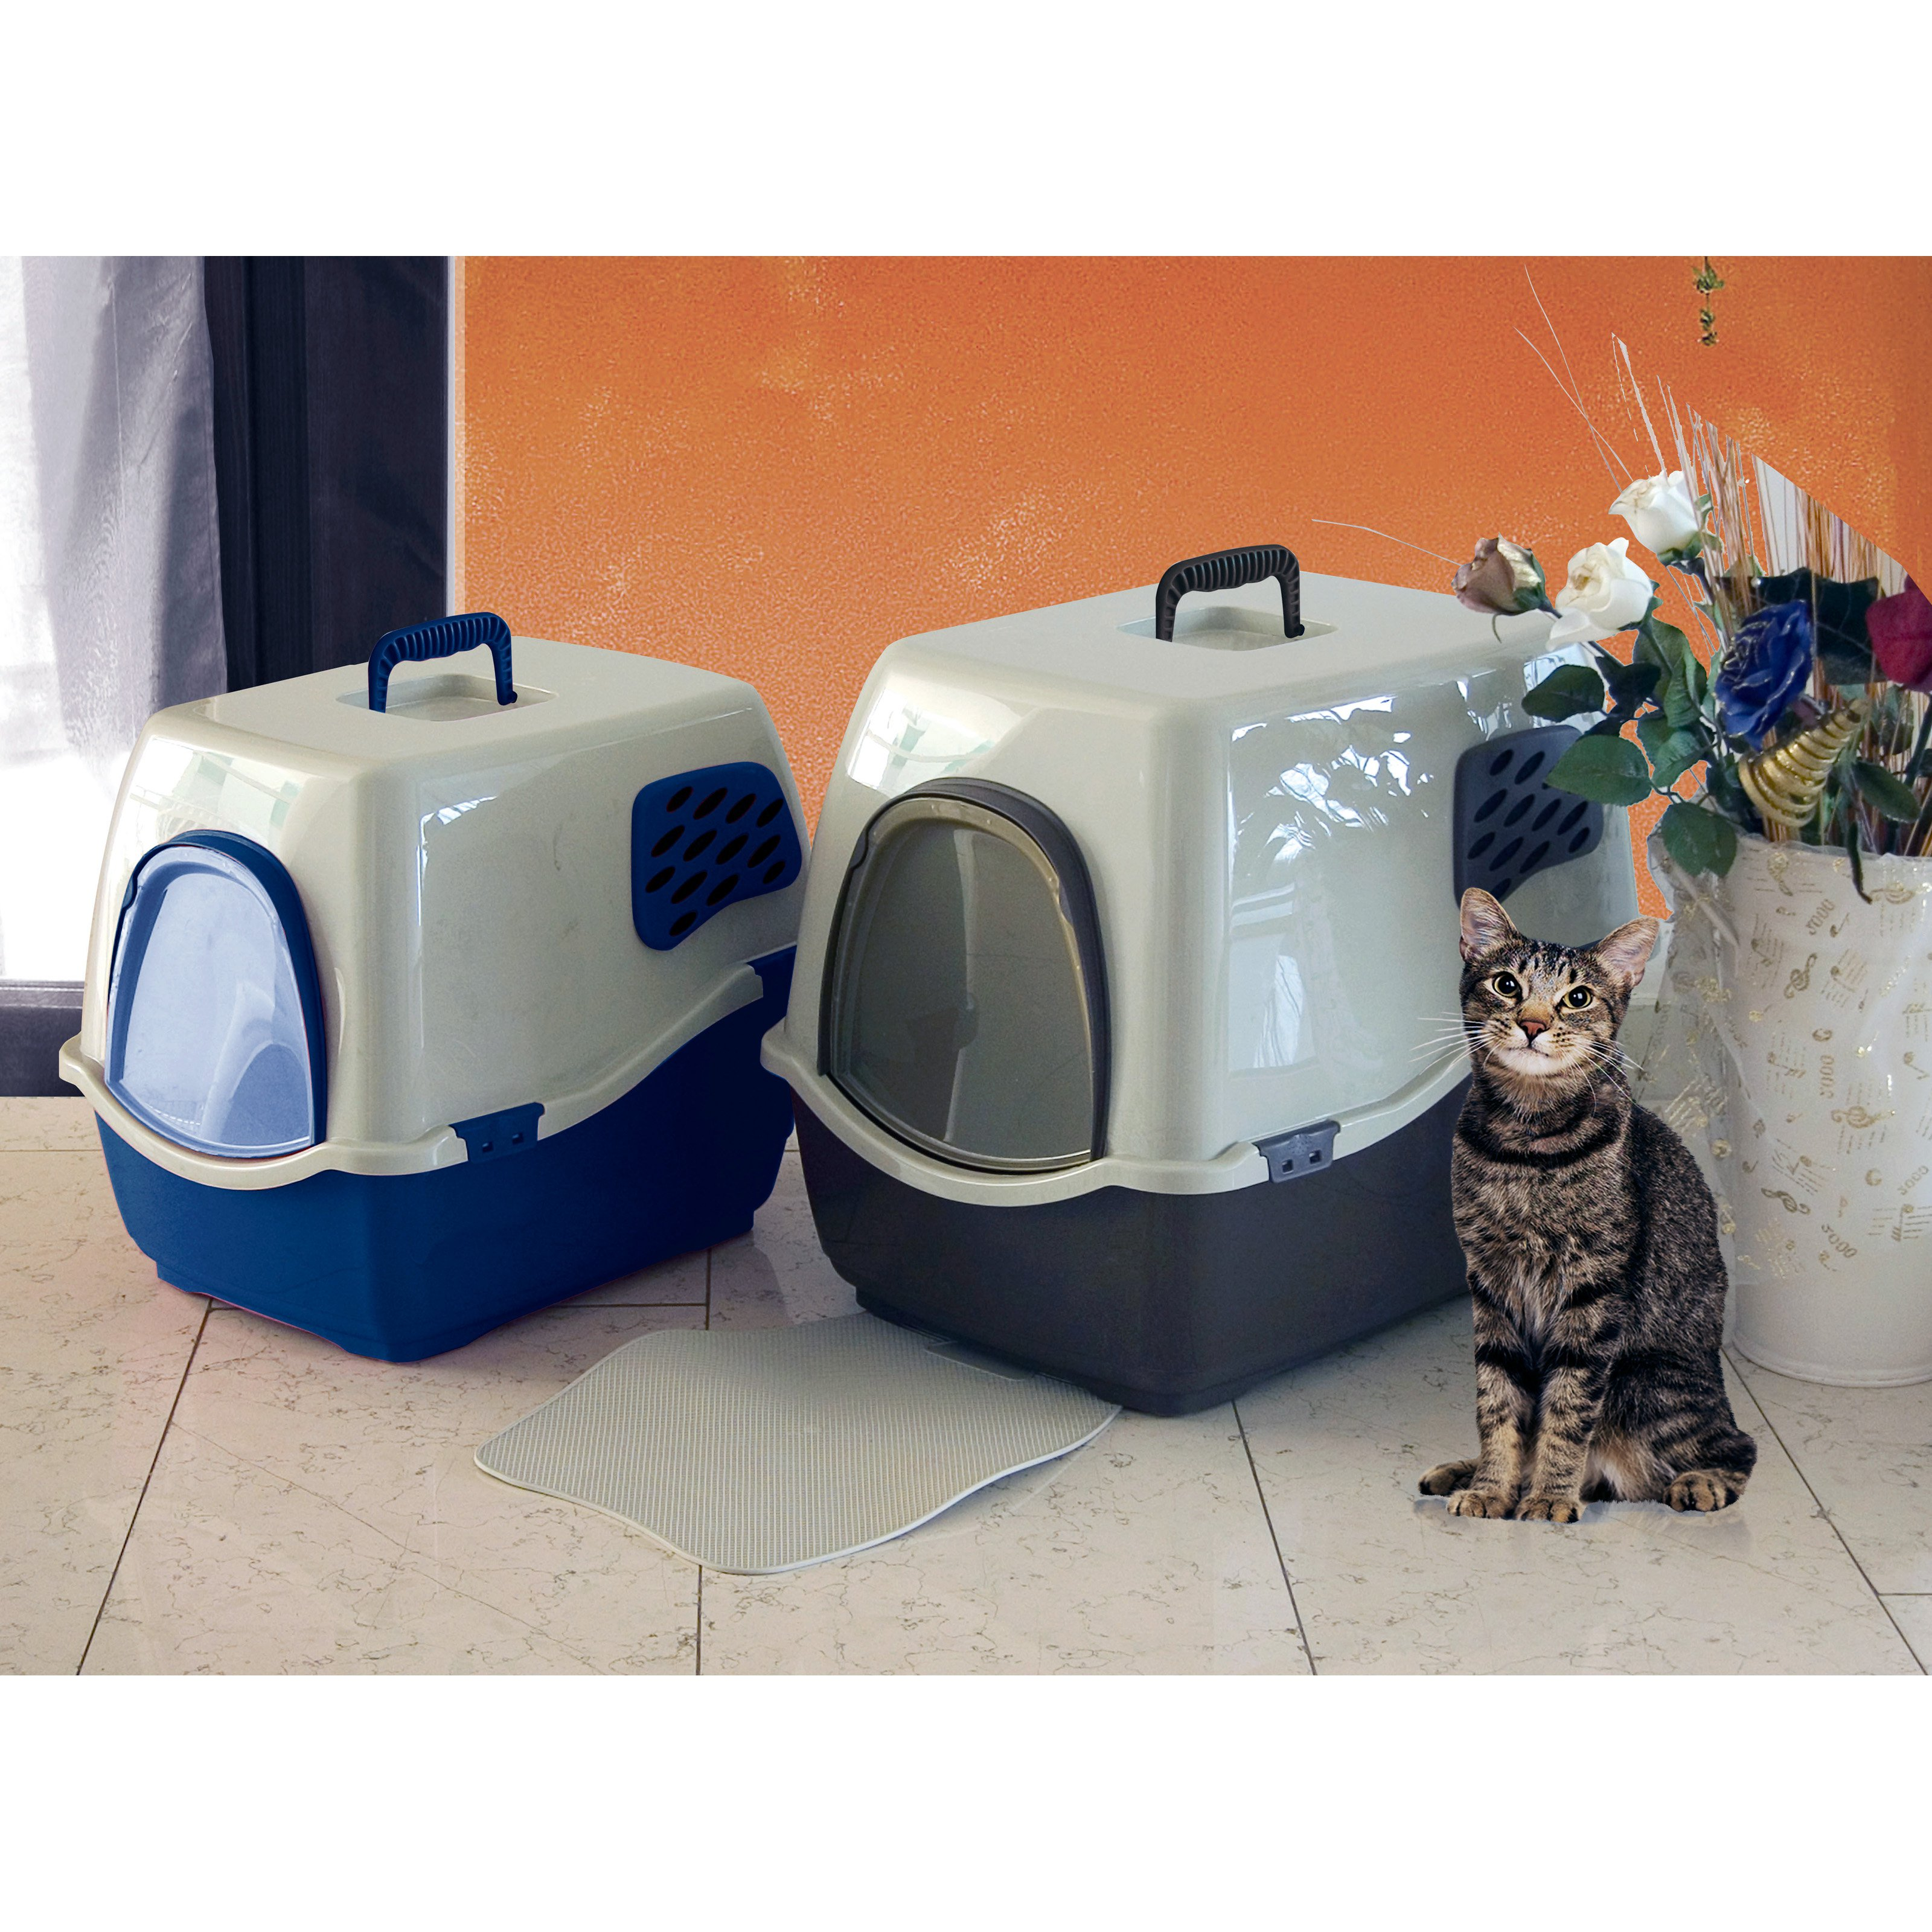 Ideas Covered Litter Box Walmart Plant Litter Box Hidden Cat